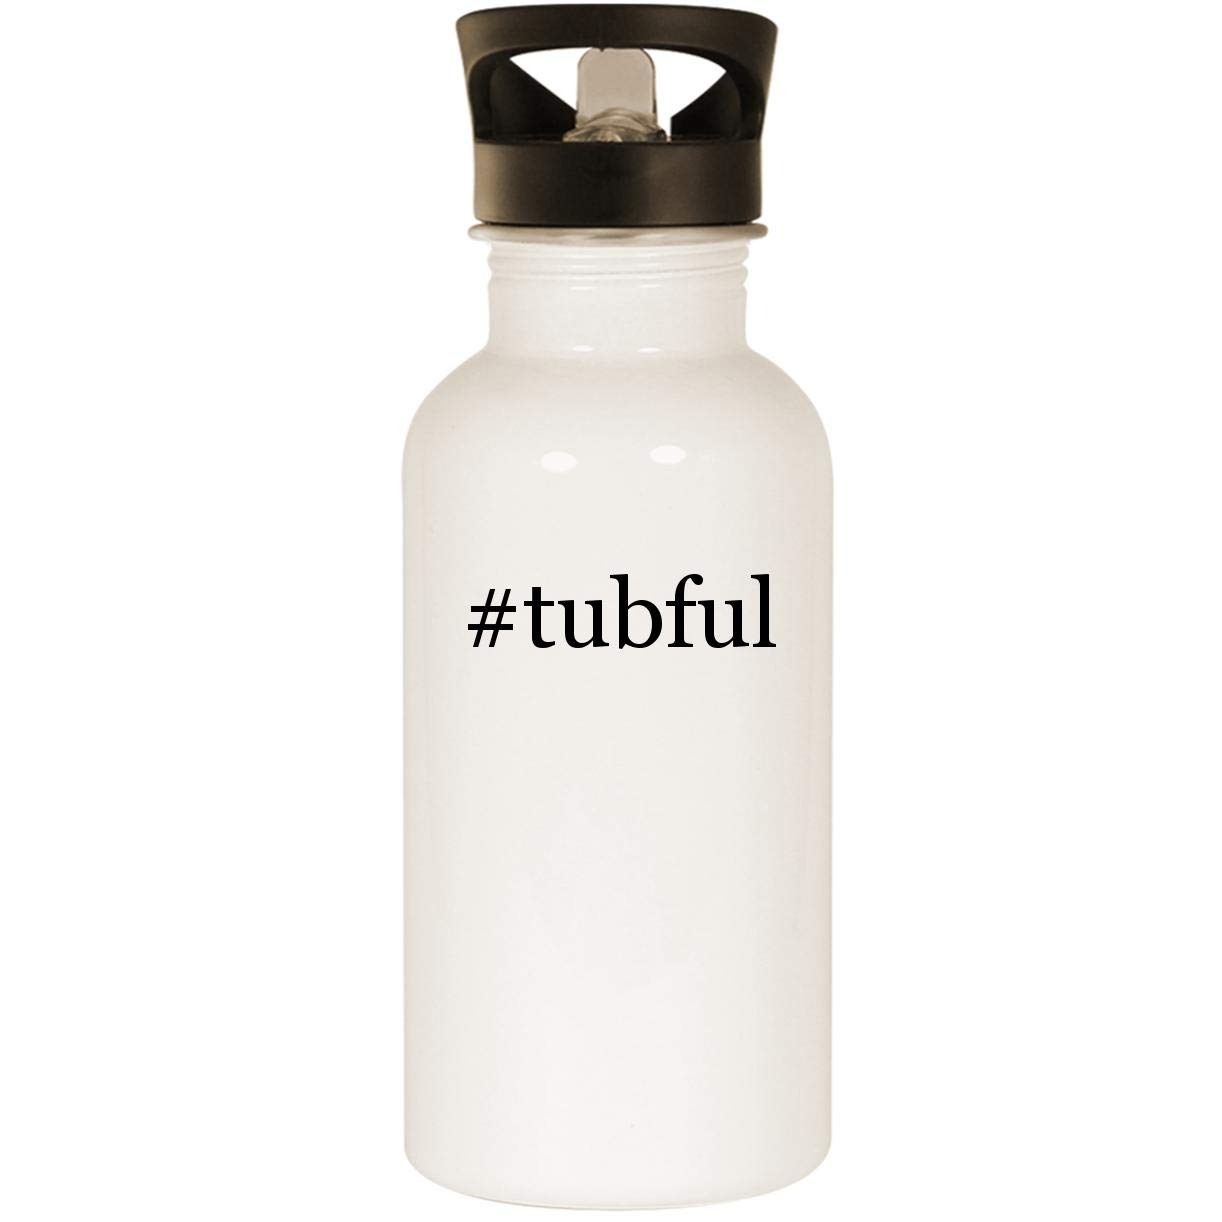 #tubful - Stainless Steel 20oz Road Ready Water Bottle, White